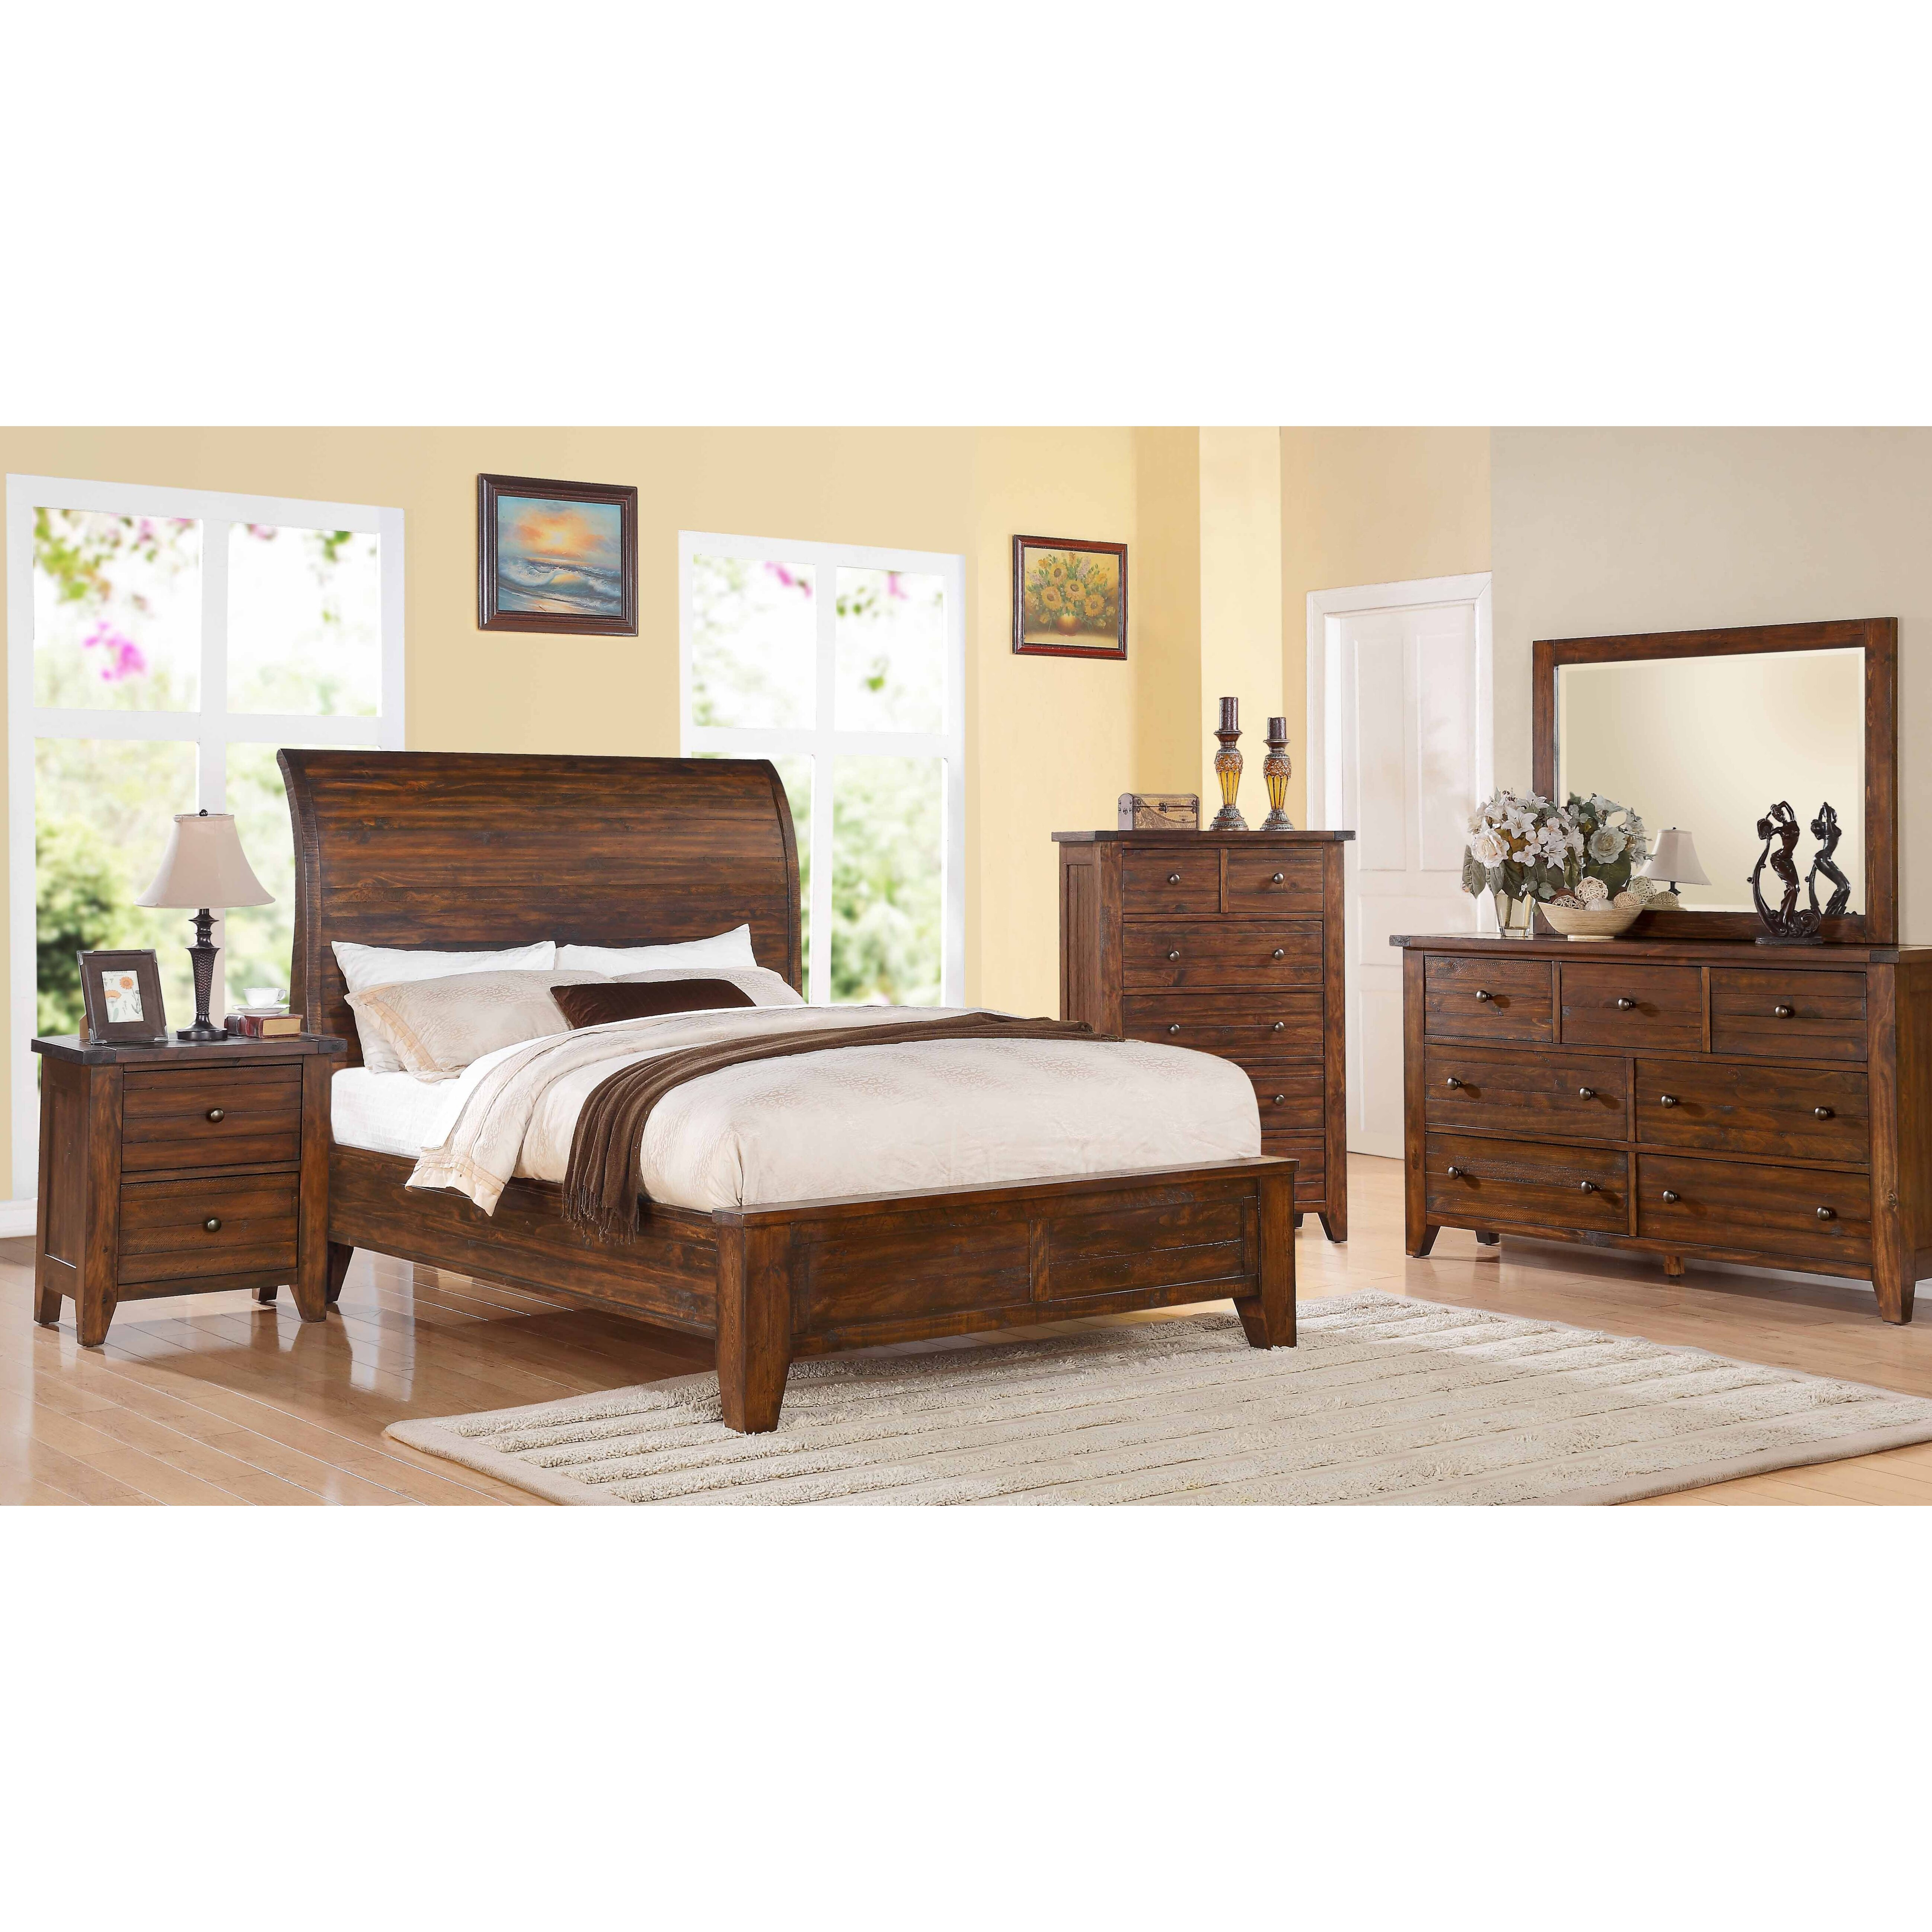 Modus Cally Platform Customizable Bedroom Set Reviews Wayfair. modus furniture